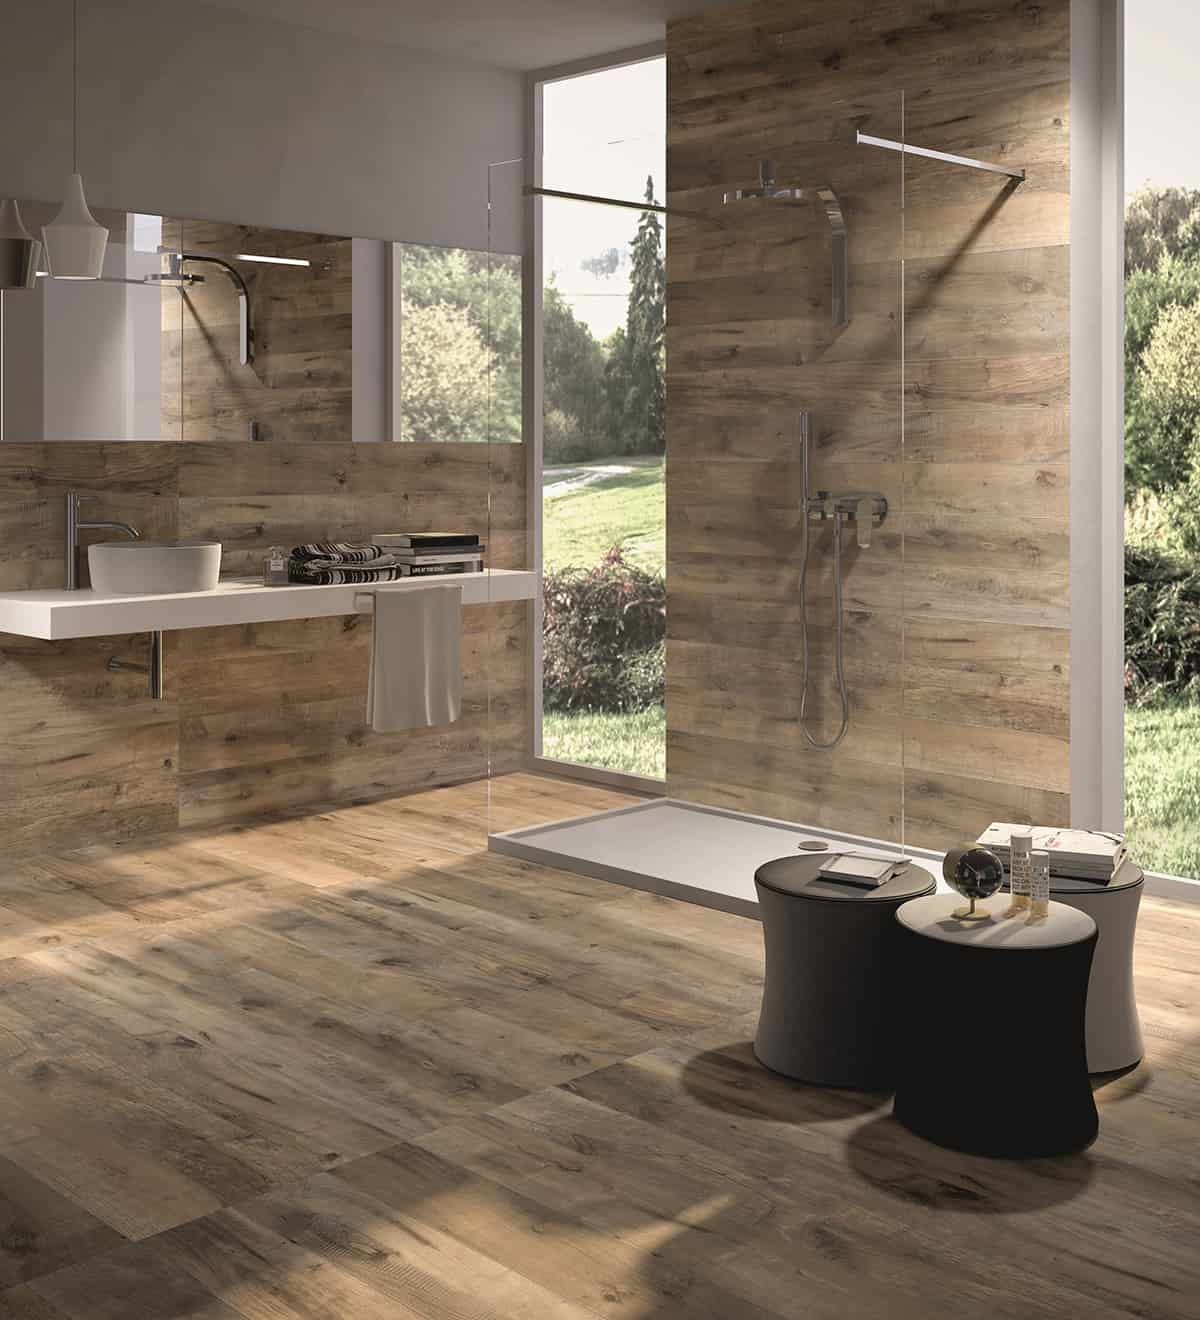 Dark Wood Tile Bathroom: Wood Look Tile: 17 Distressed, Rustic, Modern Ideas